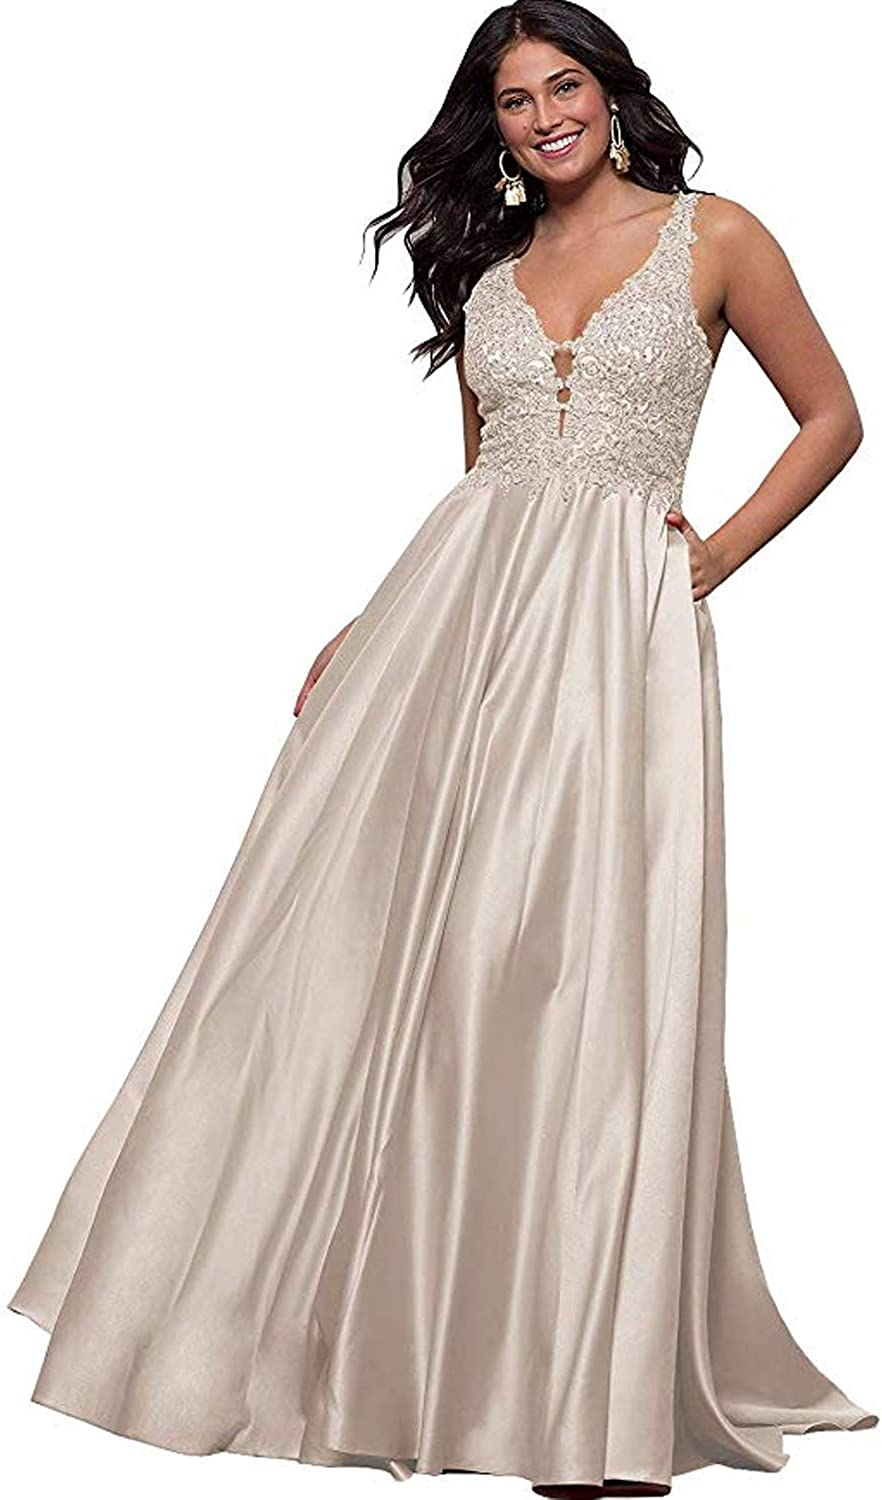 Stylefun Women V Neck Prom Dresses Long A Line Lace Satin Formal Evening Gowns with Pockets HD29